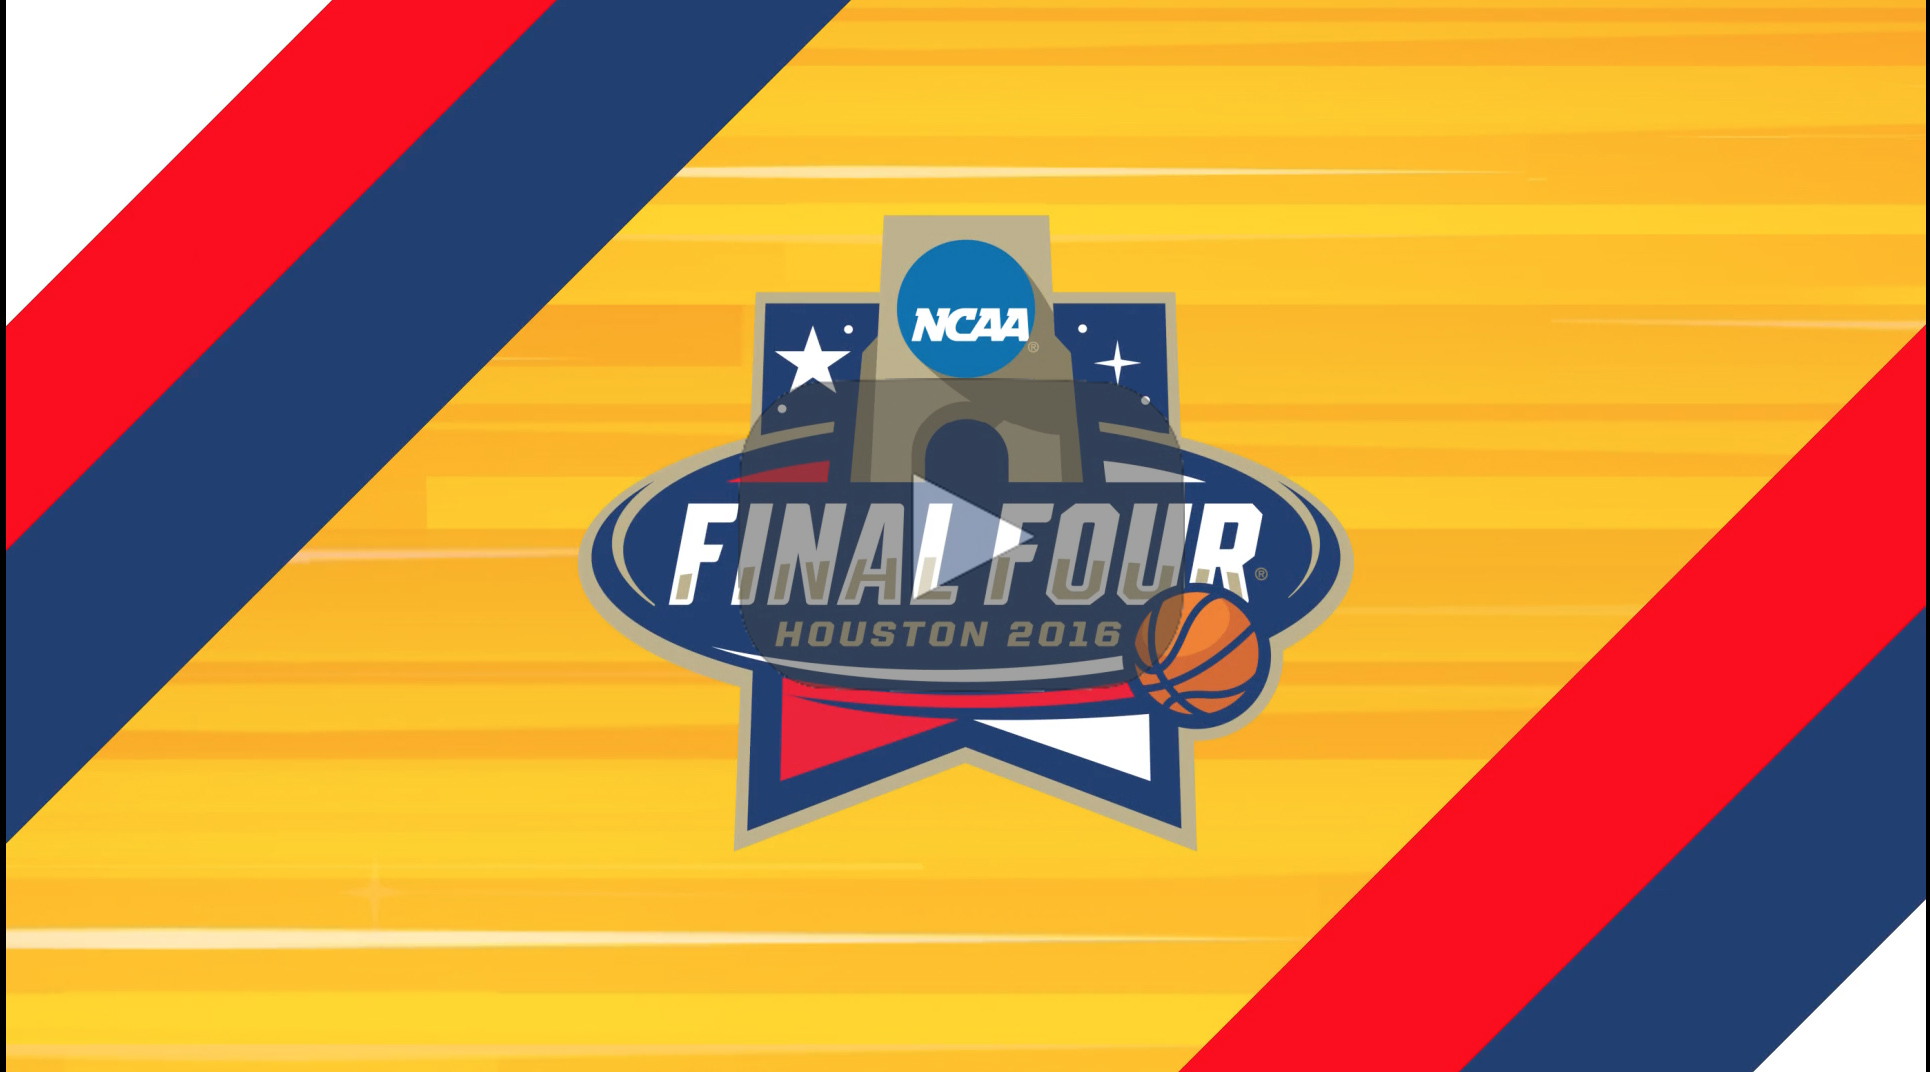 Champions of Sport: The 2016 NCAA® Men's Final Four™ Basketball Court Unveil